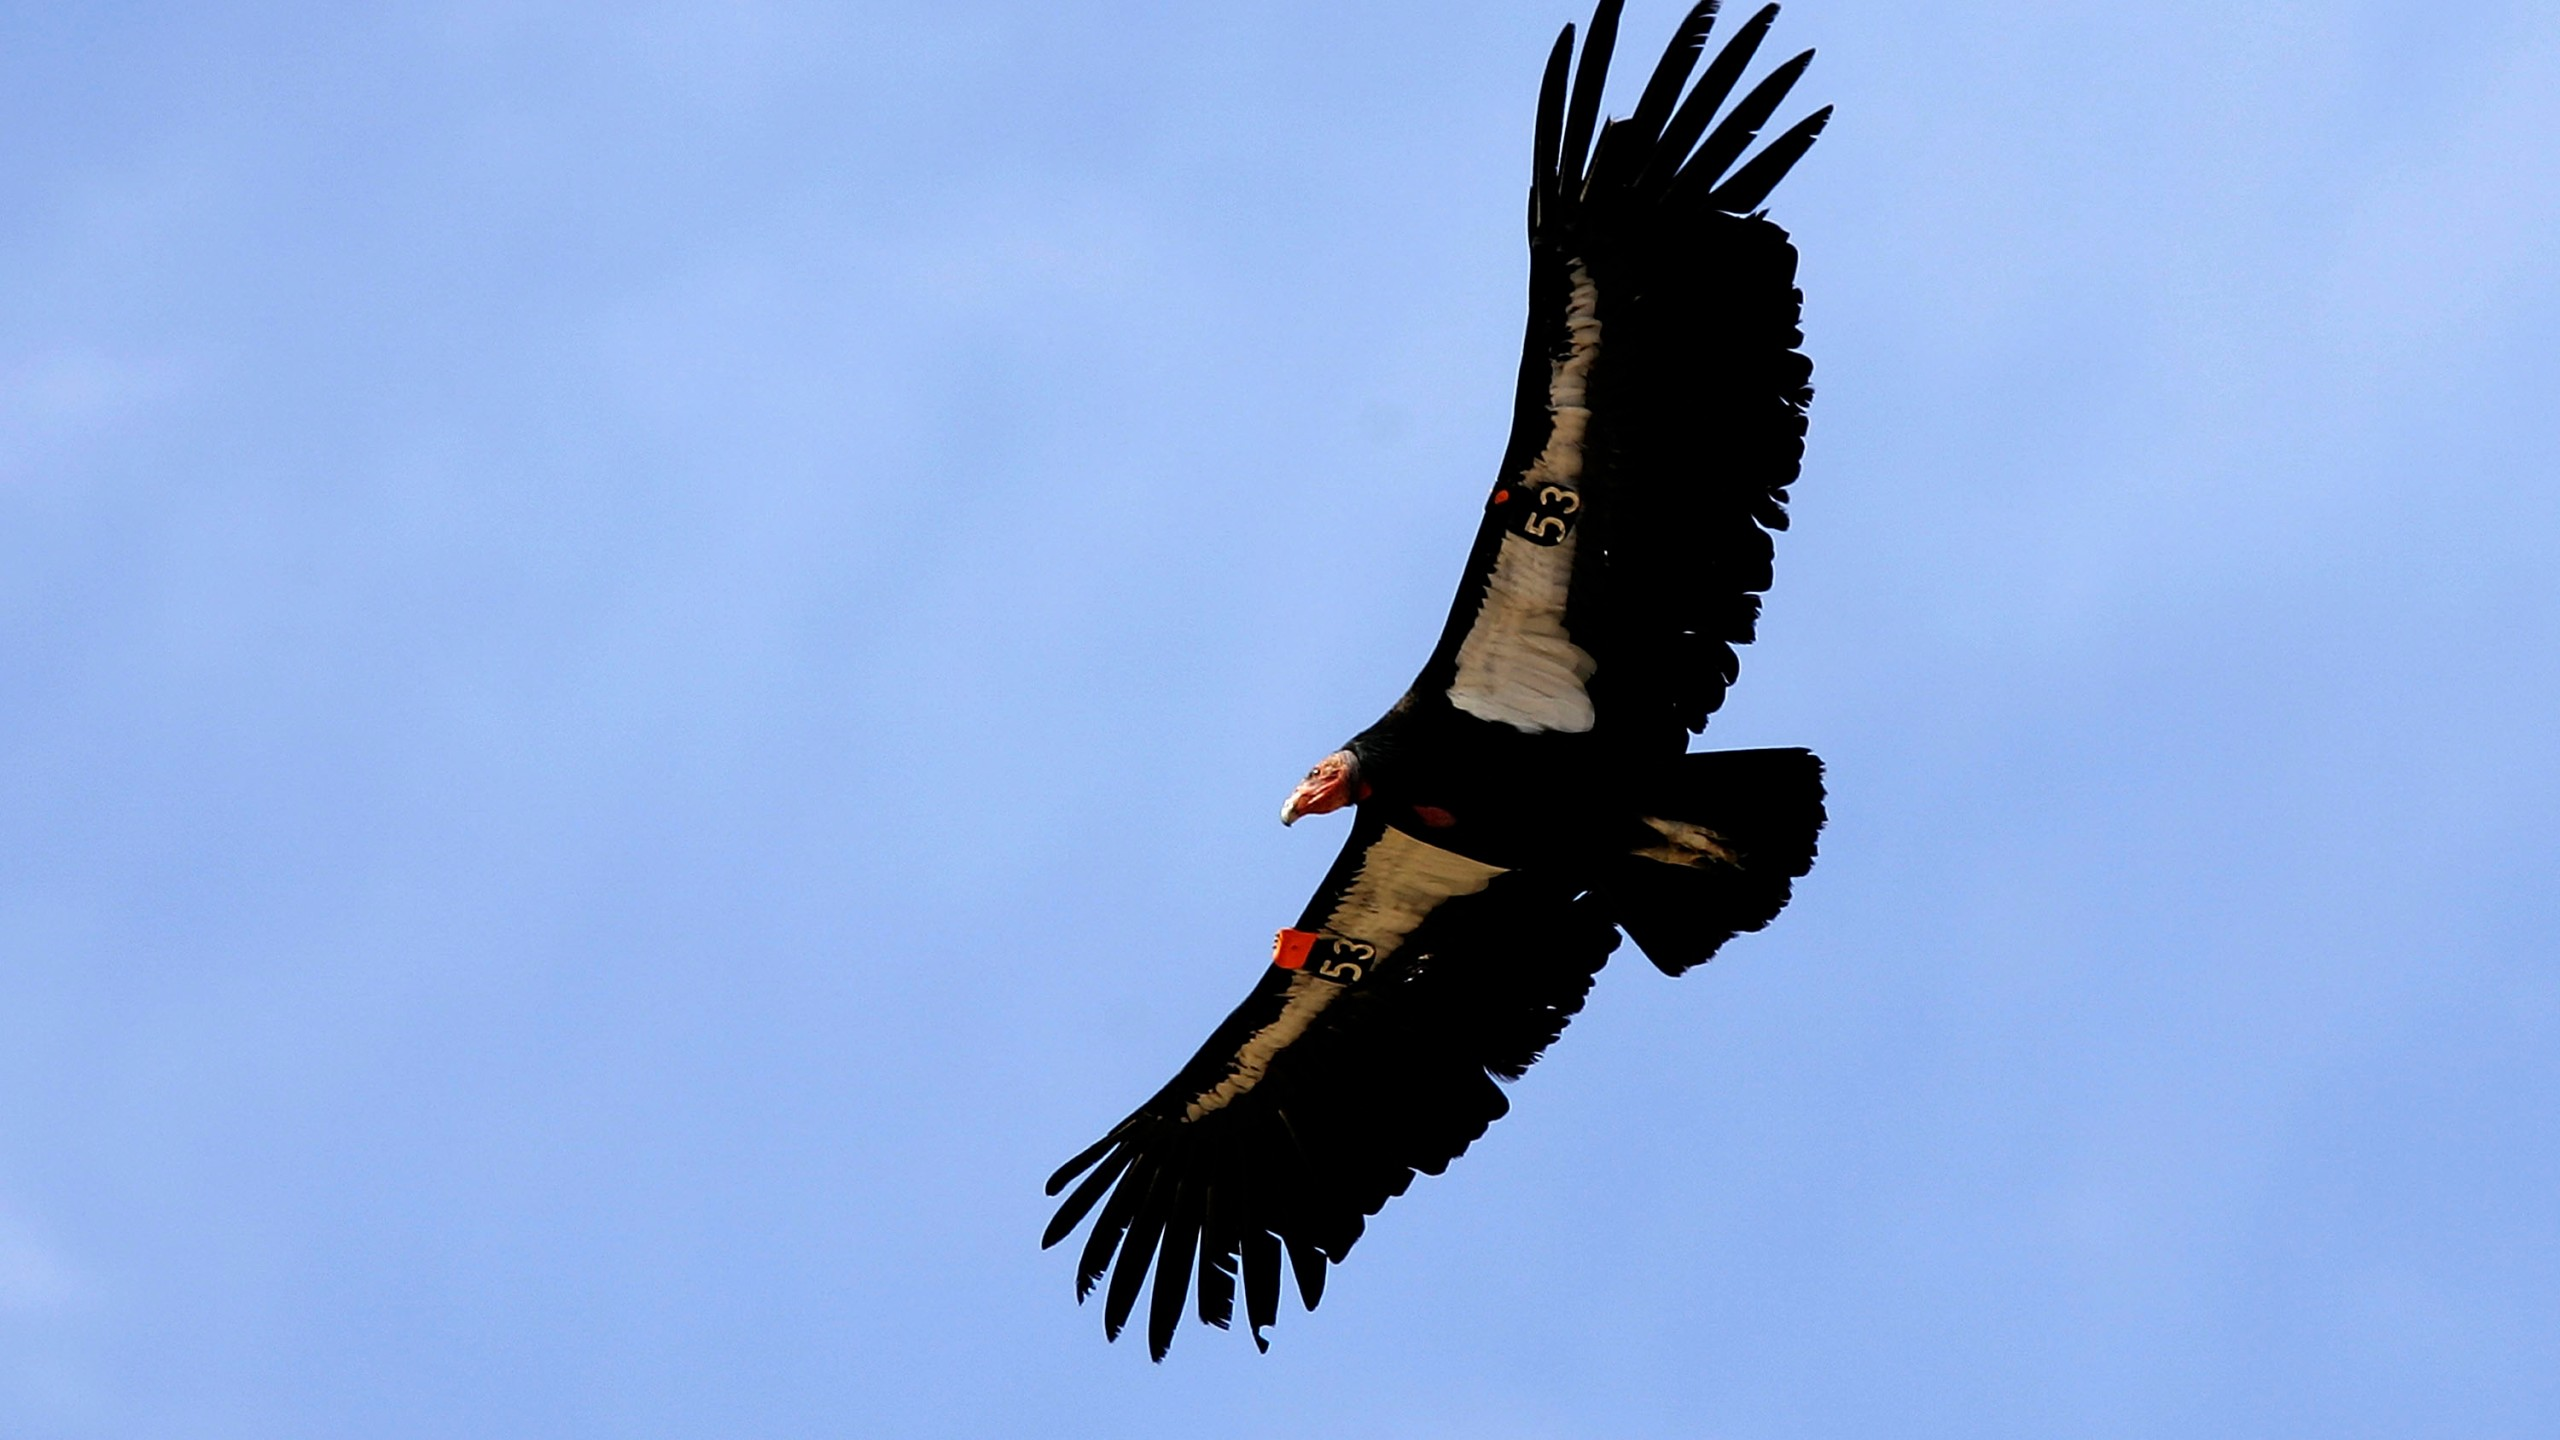 A rare and endangered California condor flies through Marble Gorge, east of Grand Canyon National Park, on March 22, 2007. (Credit: David McNew / Getty Images)